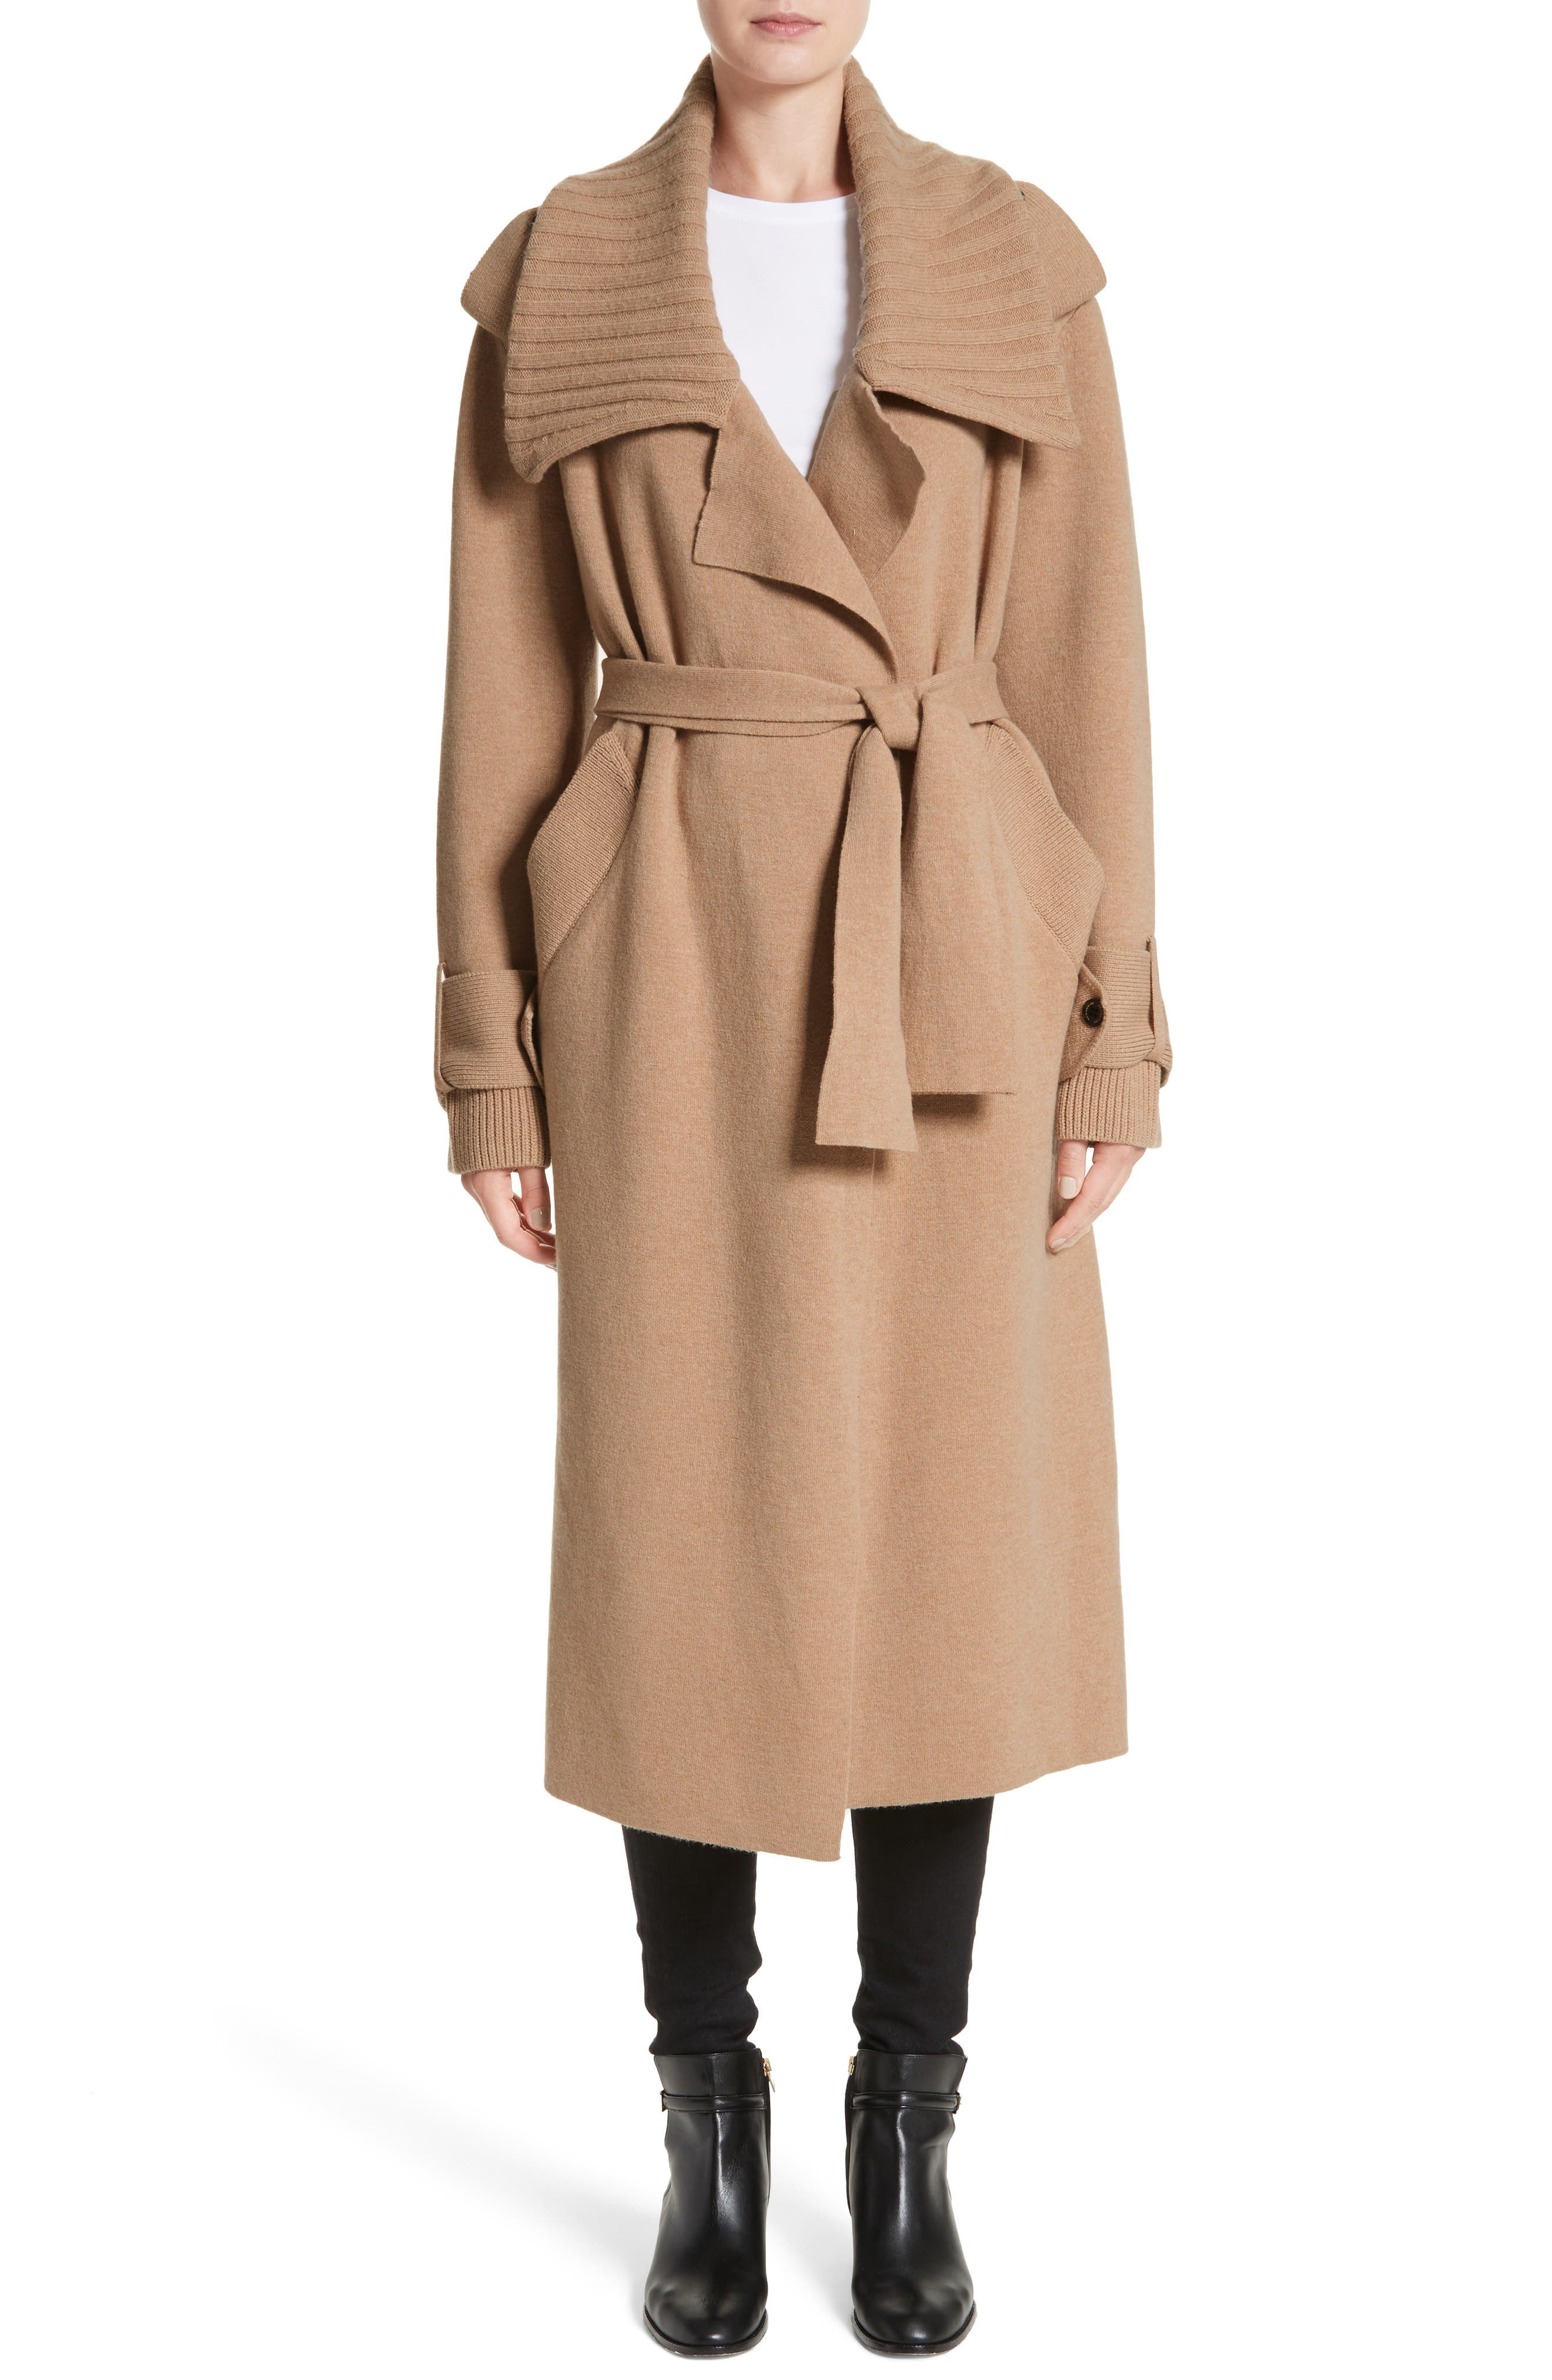 Piota Wool Blend Knit Trench Coat,                         Main,                         color, Camel